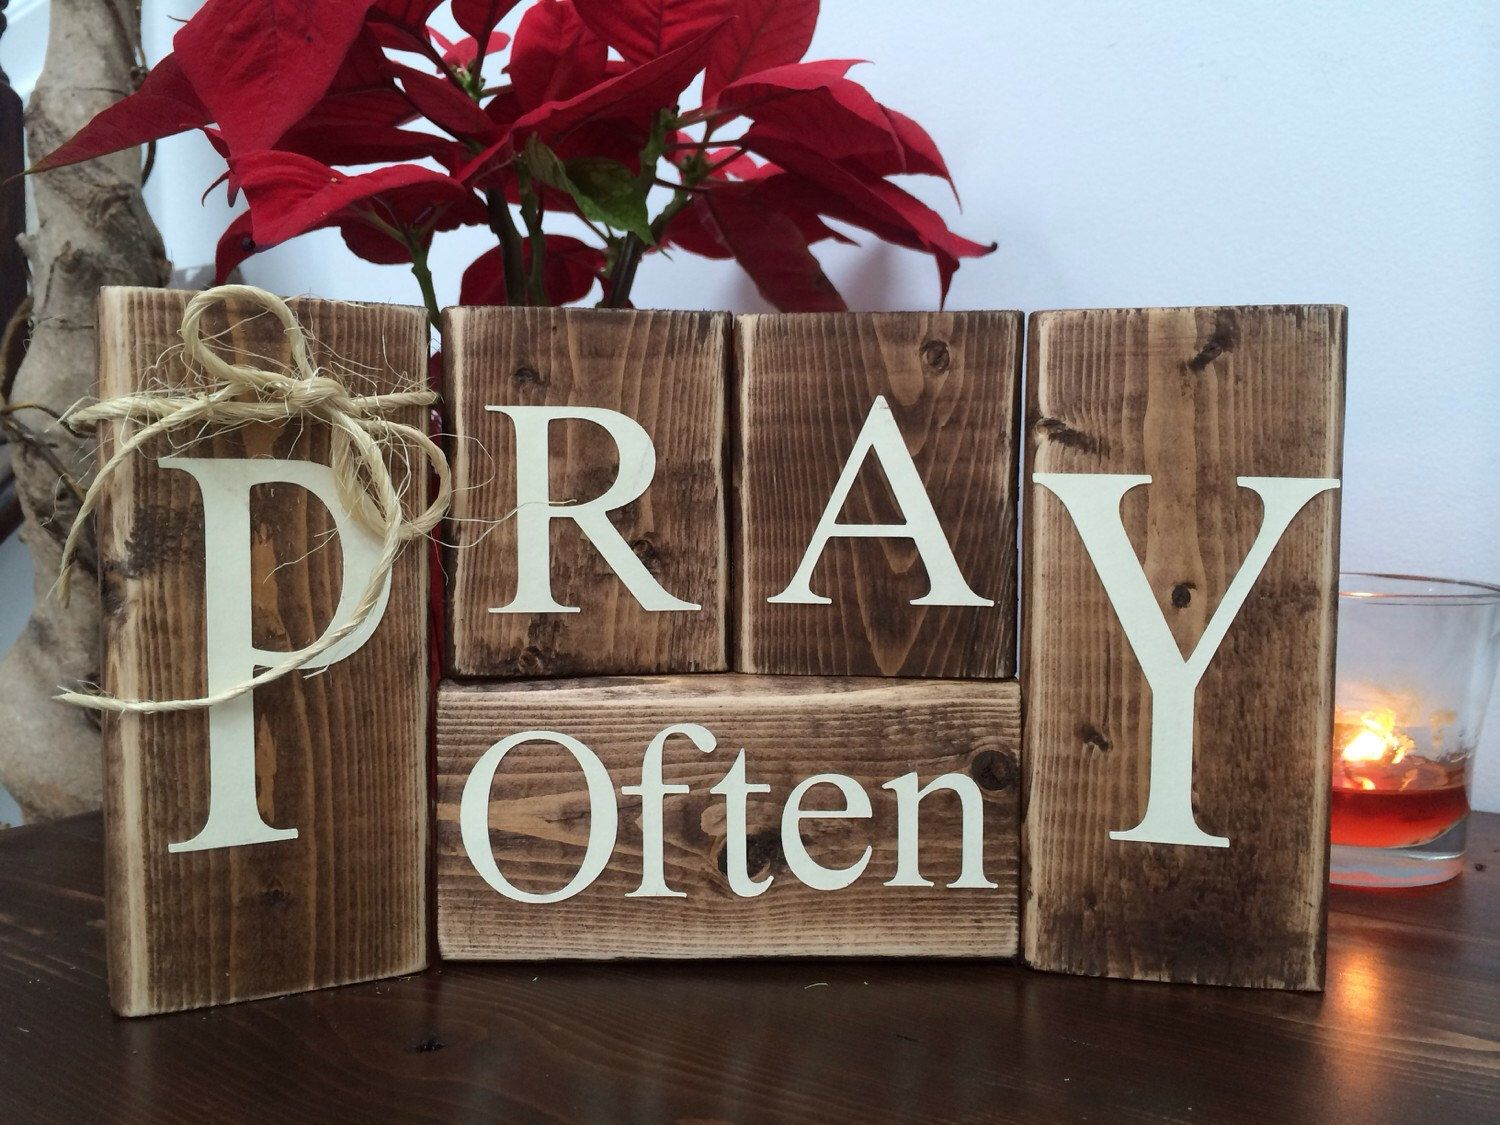 Pray often wood blocks home decor inspirational rustic Cool christmas house decorations